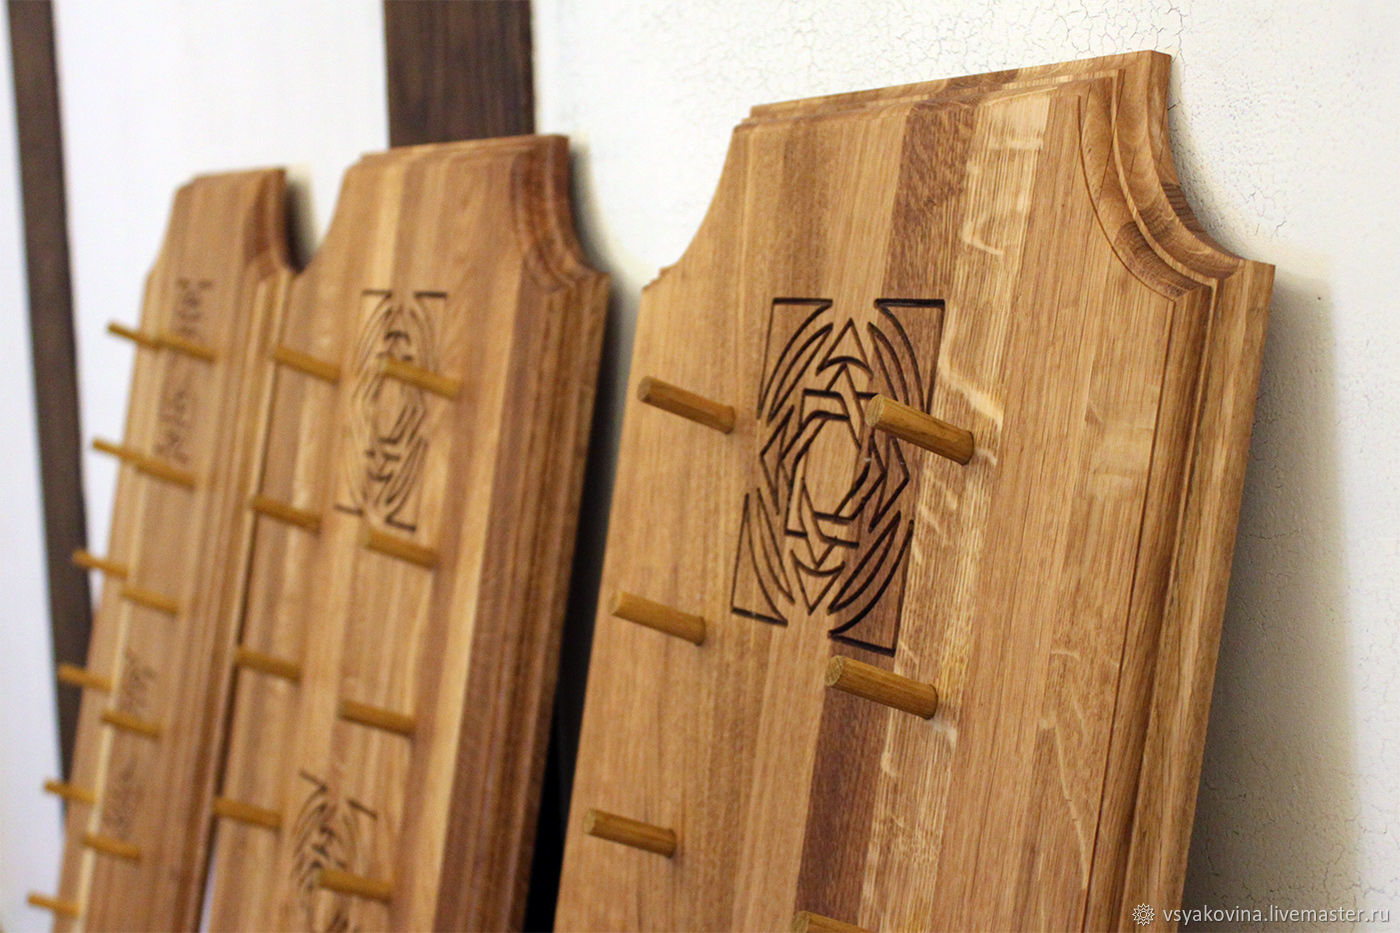 Suspension for knives made of oak (or ash), Knives, St. Petersburg,  Фото №1